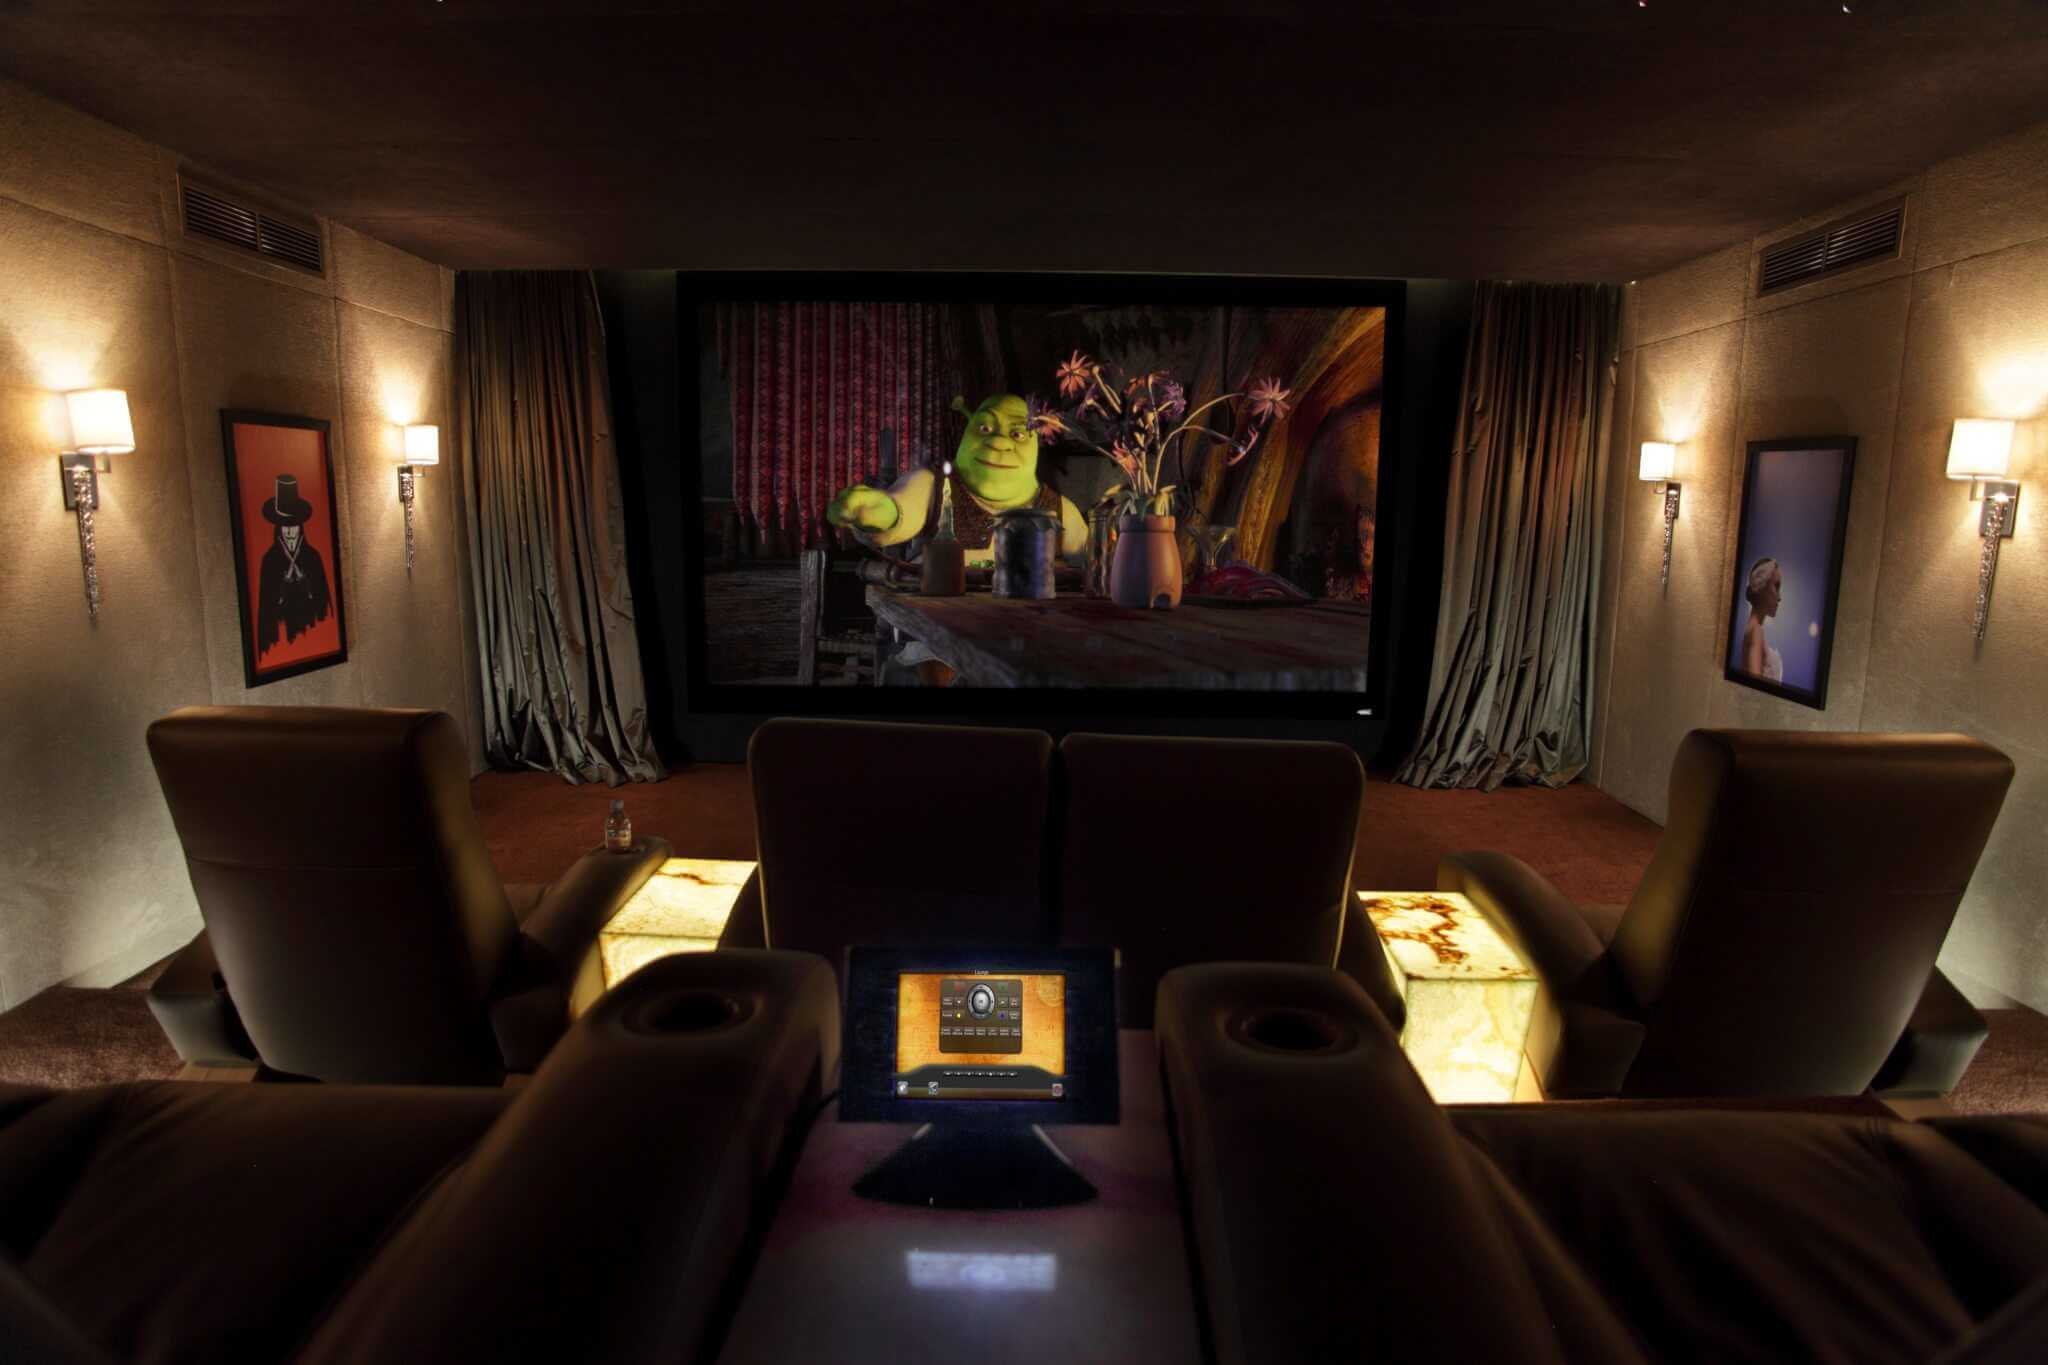 Home Cinema Installation in Dubai